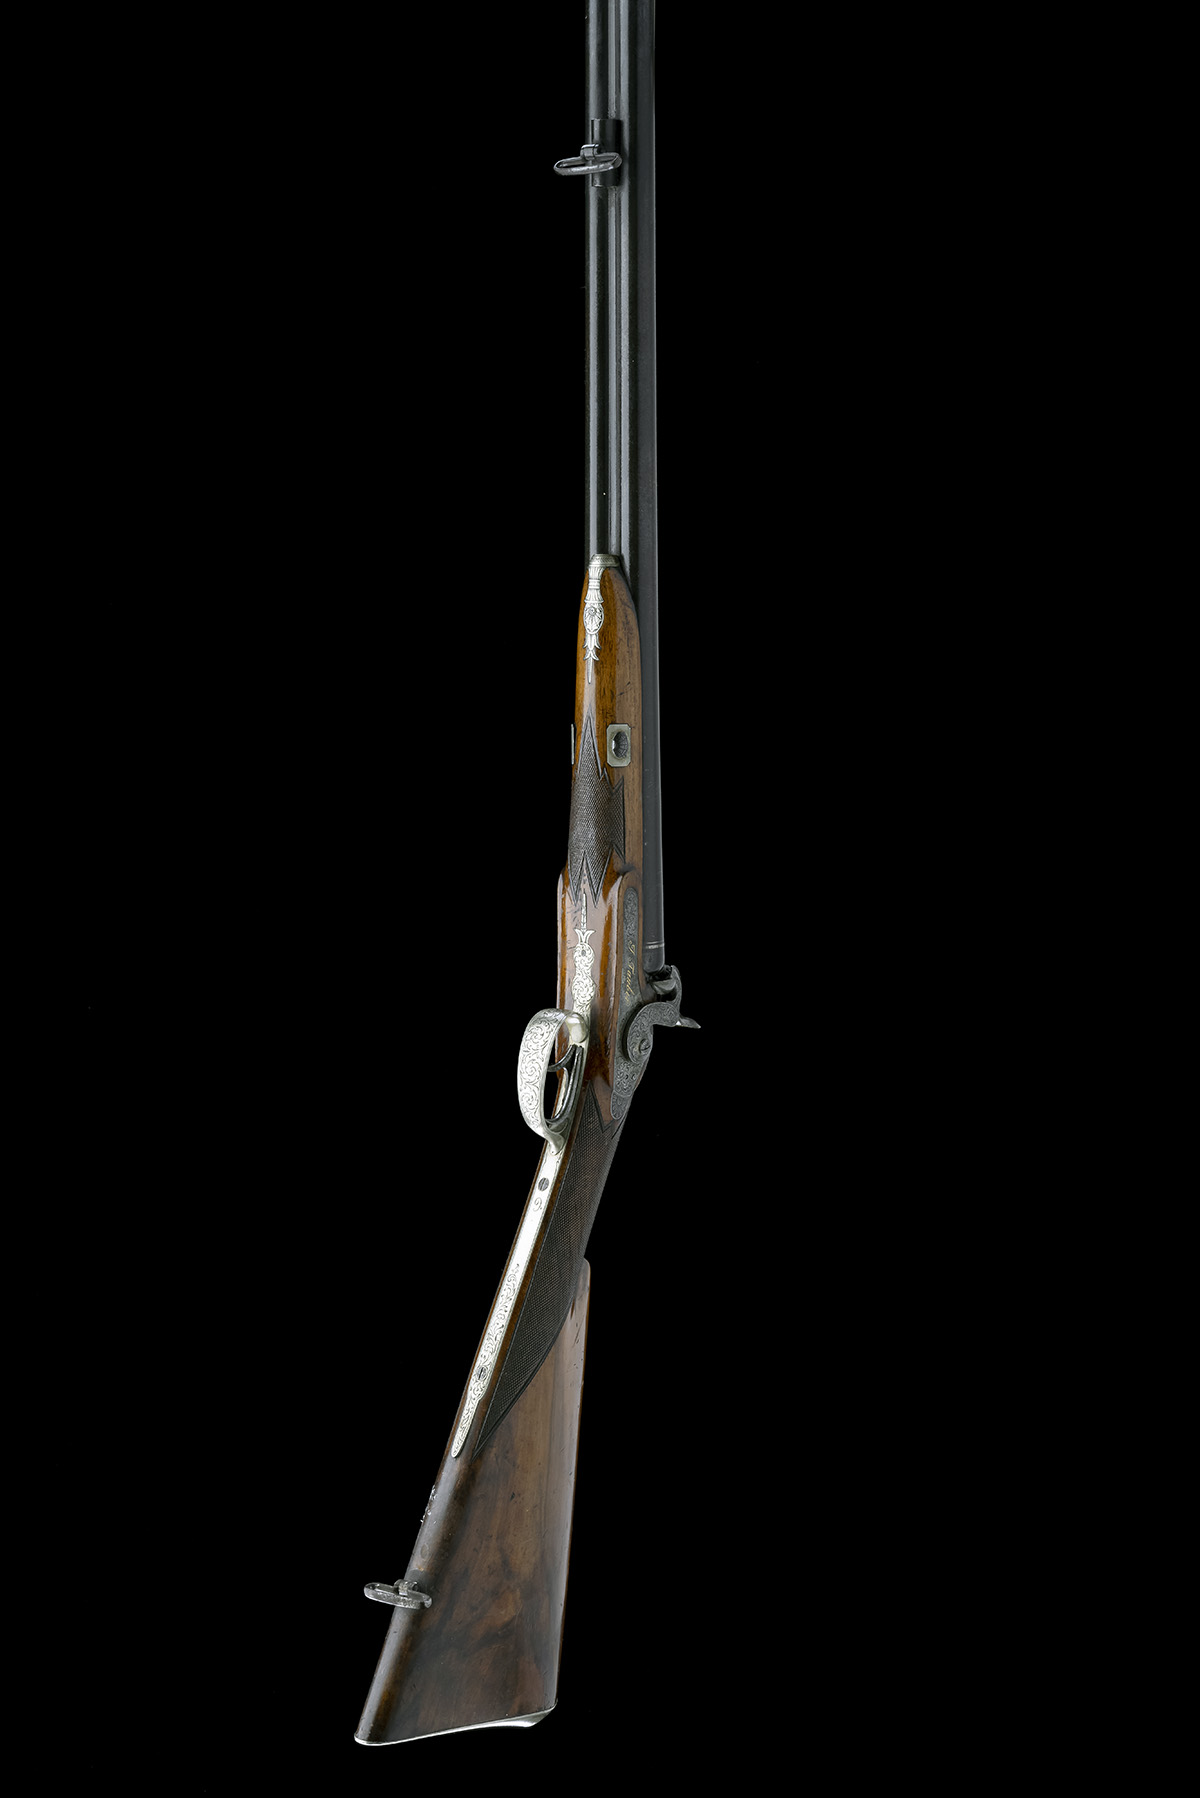 J. TAUBER, ZURICH A 14-BORE PERCUSSION DOUBLE-BARRELLED SPORTING-GUN, no visible serial number, - Image 9 of 9